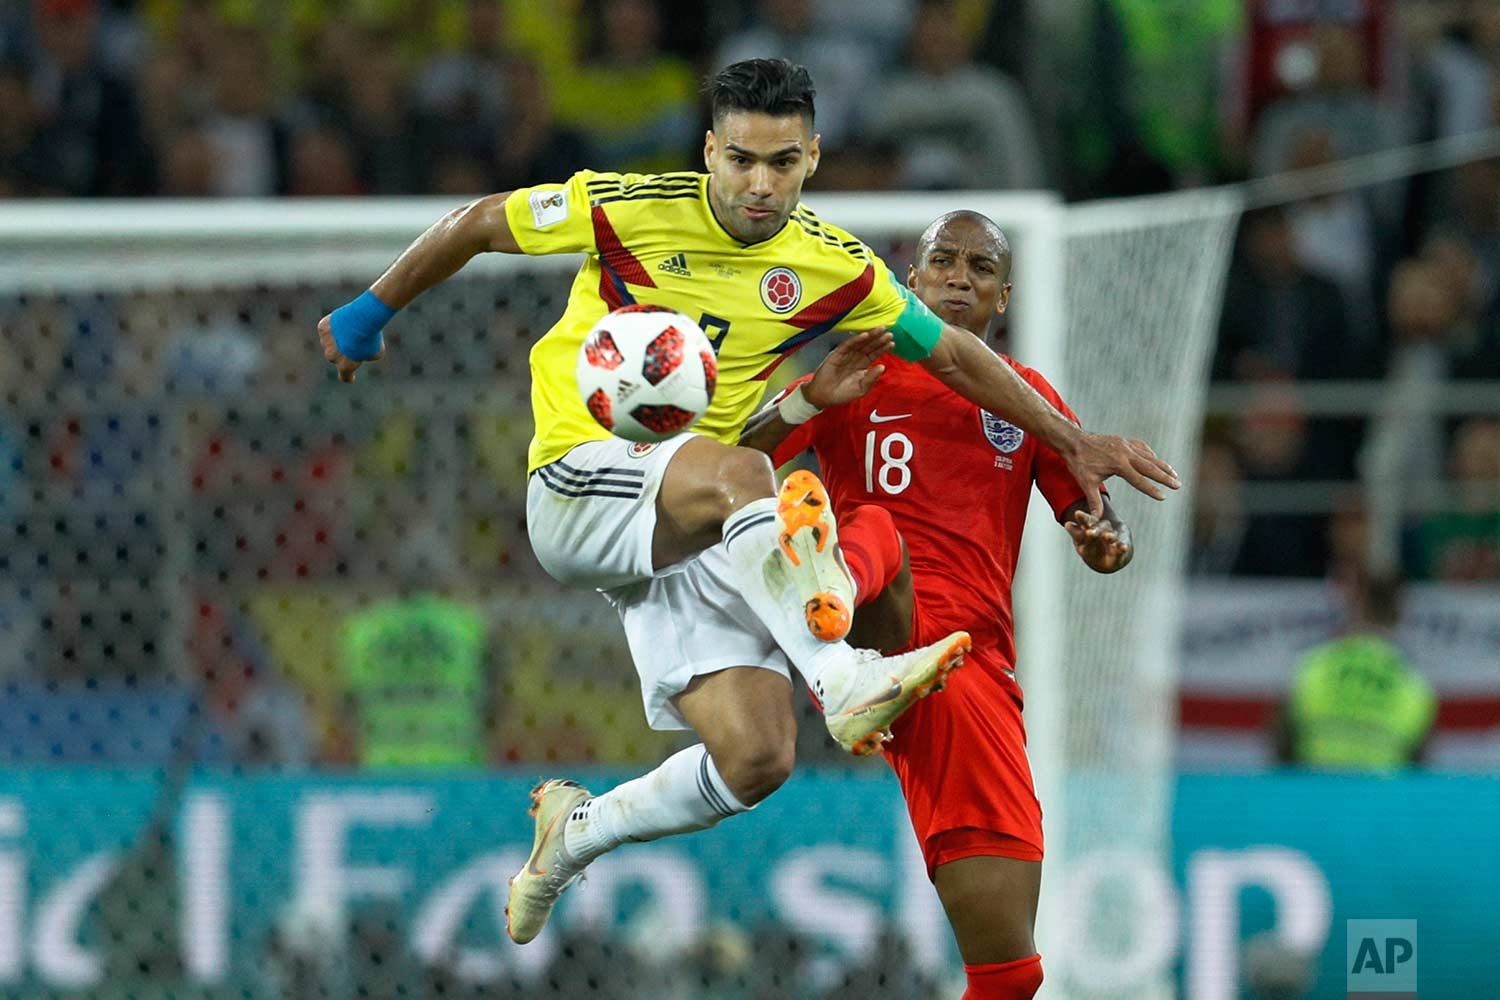 Colombia's Radamel Falcao, left, vies for a ball with England's Ashley Young during the round of 16 match between Colombia and England at the 2018 soccer World Cup in the Spartak Stadium, in Moscow, Russia, Tuesday, July 3, 2018. (AP Photo/Victor R. Caivano)